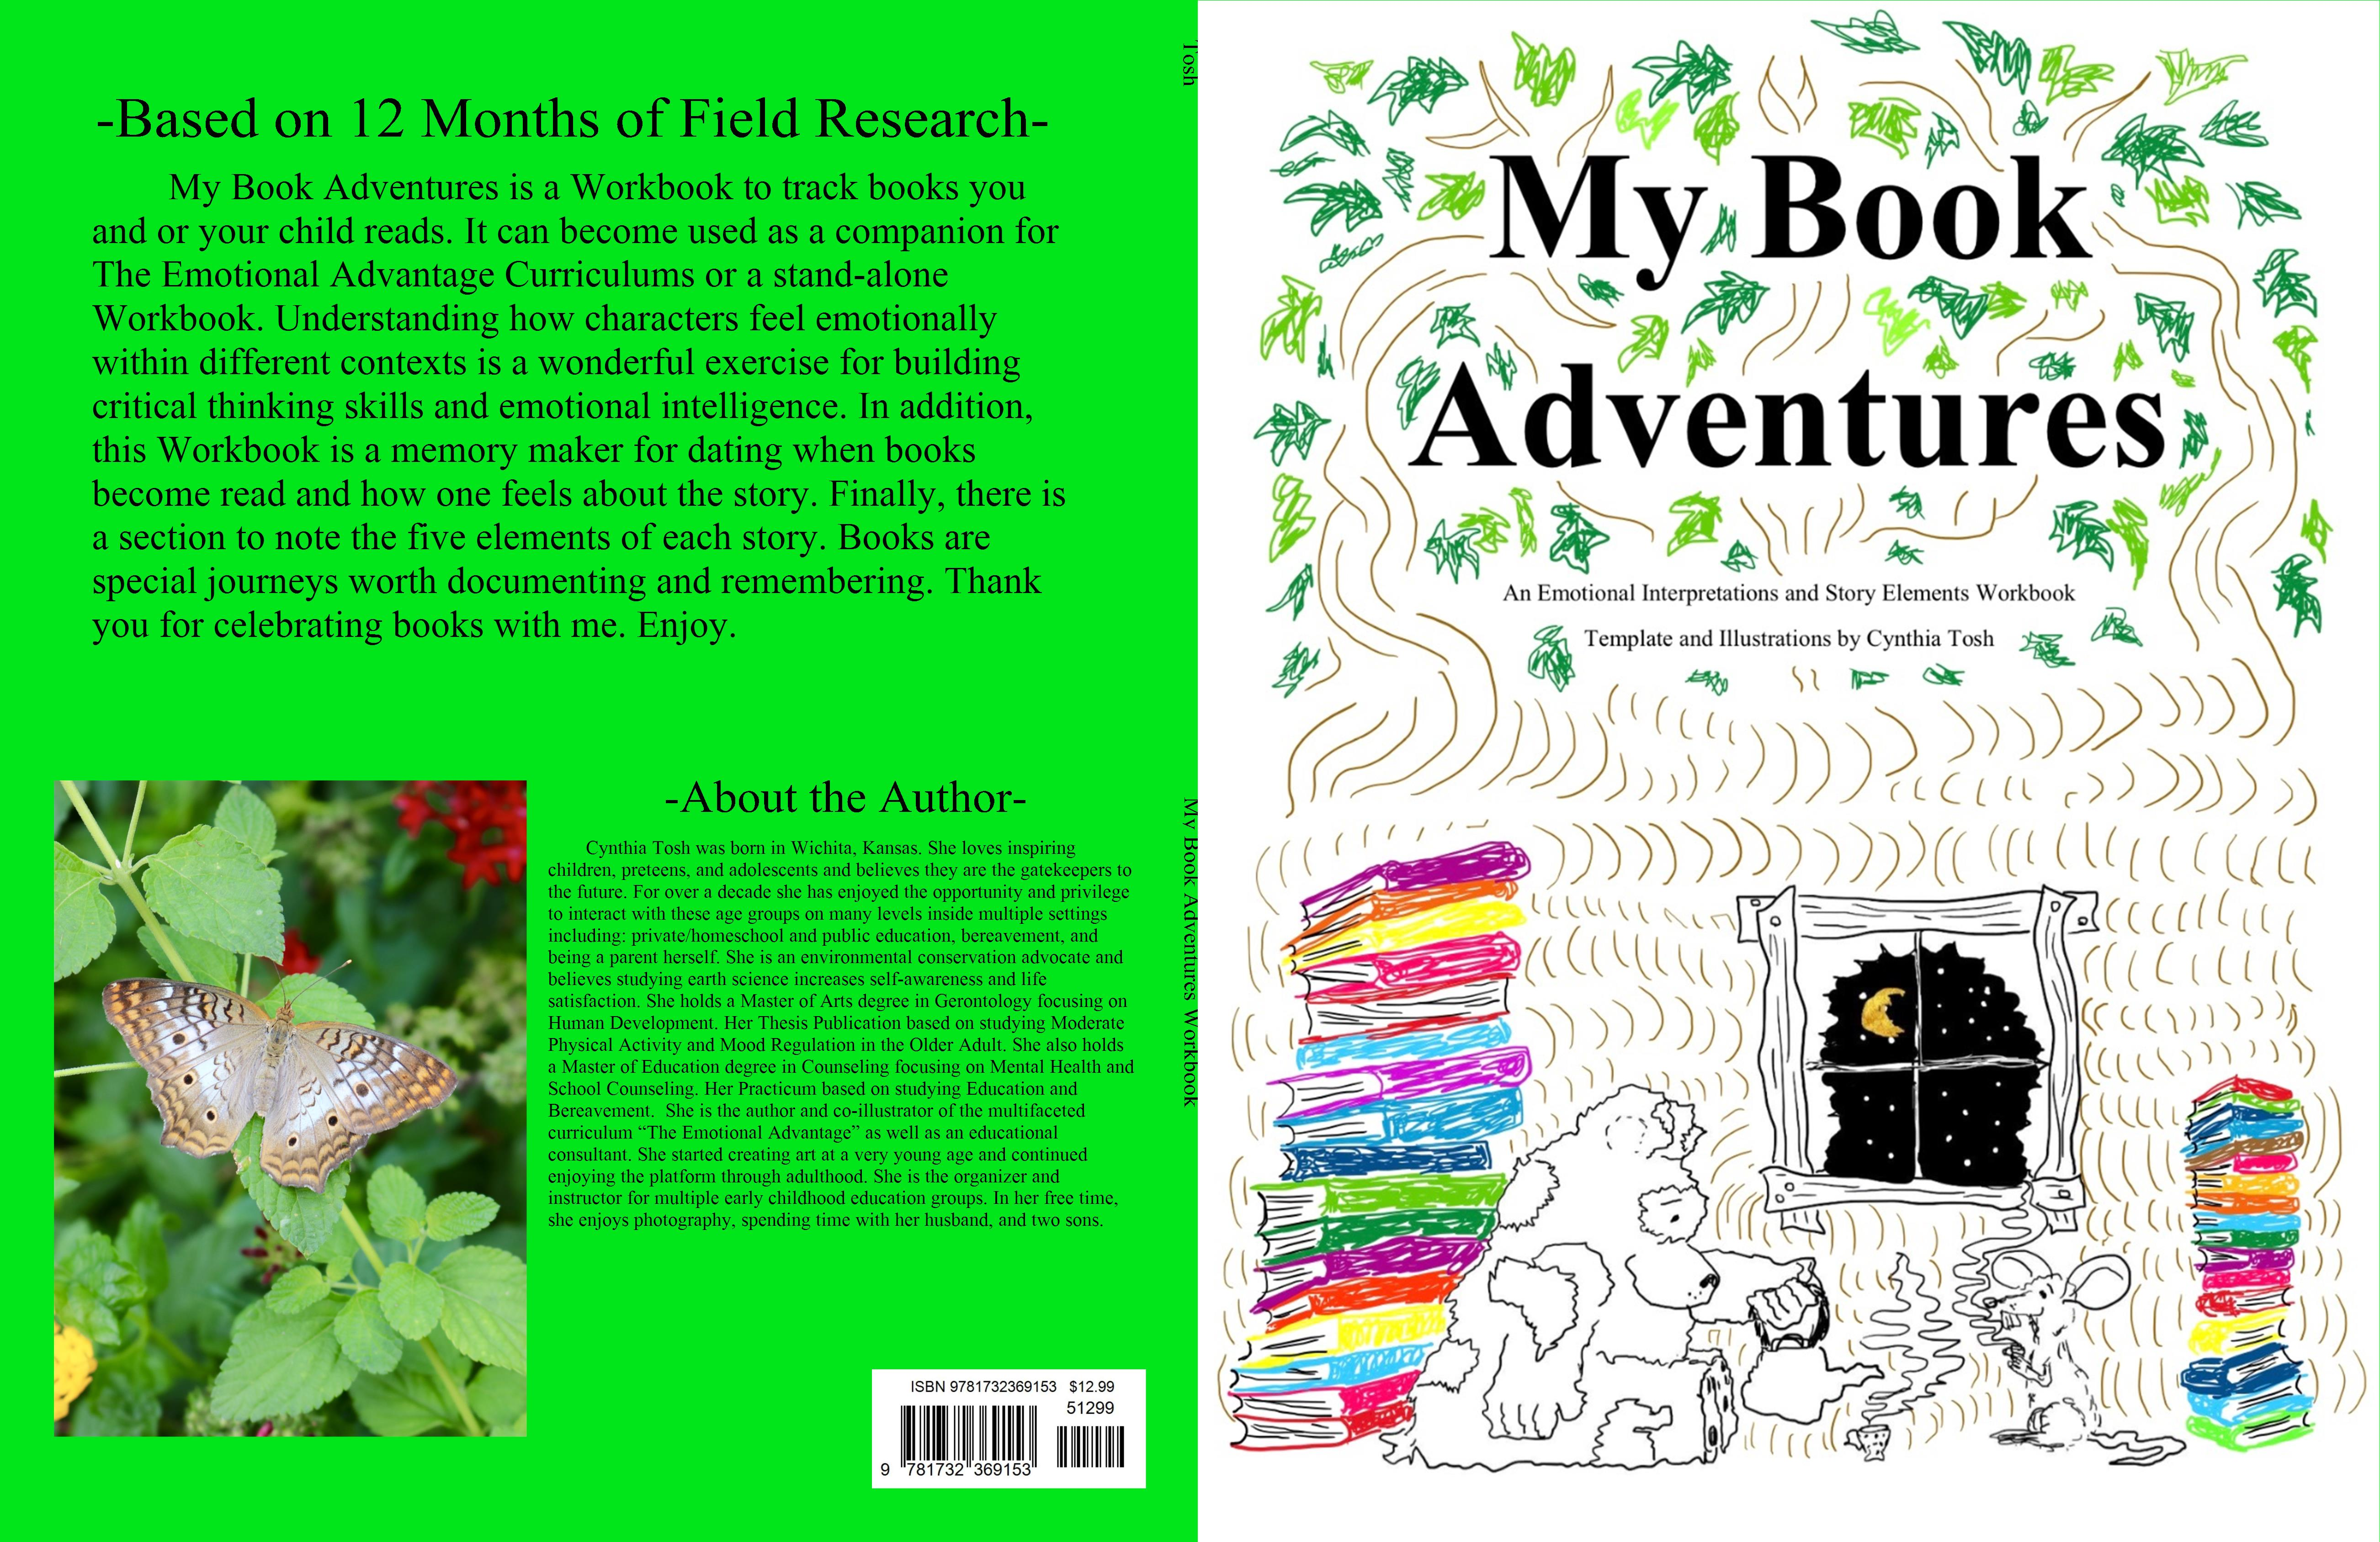 My Book Adventures Workbook cover image